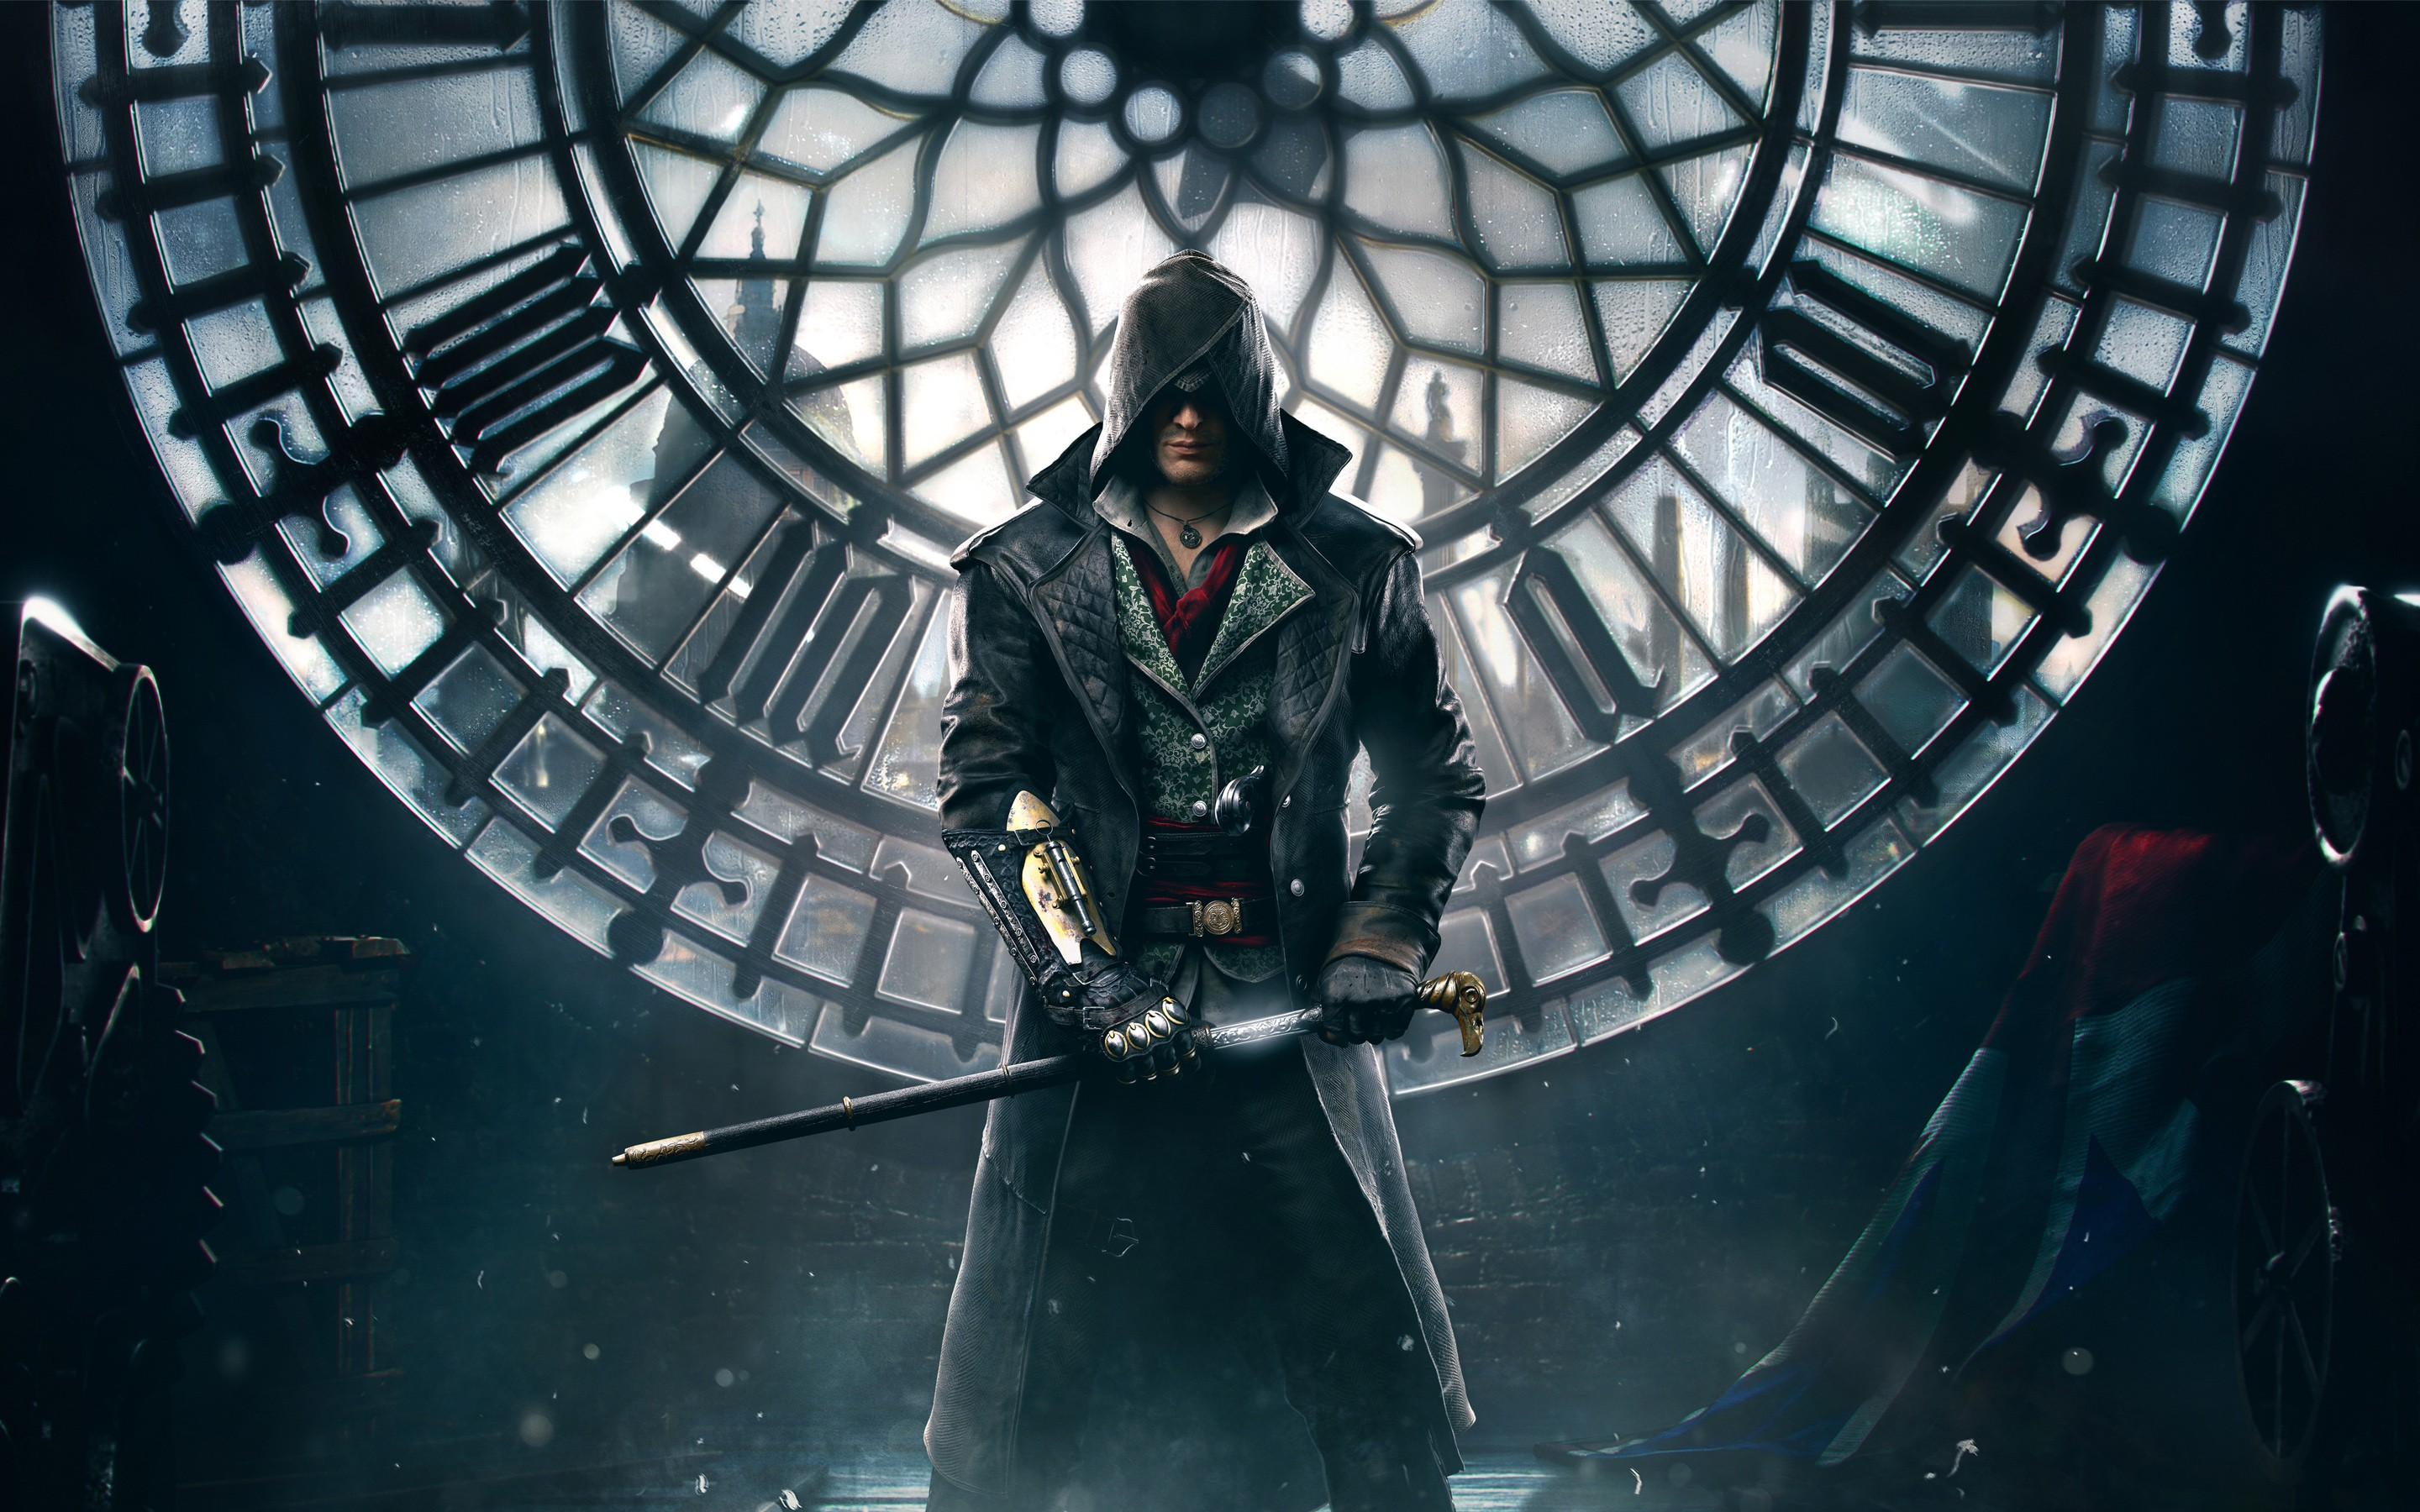 assassins creed syndicate game 3, hd games, 4k wallpapers, images